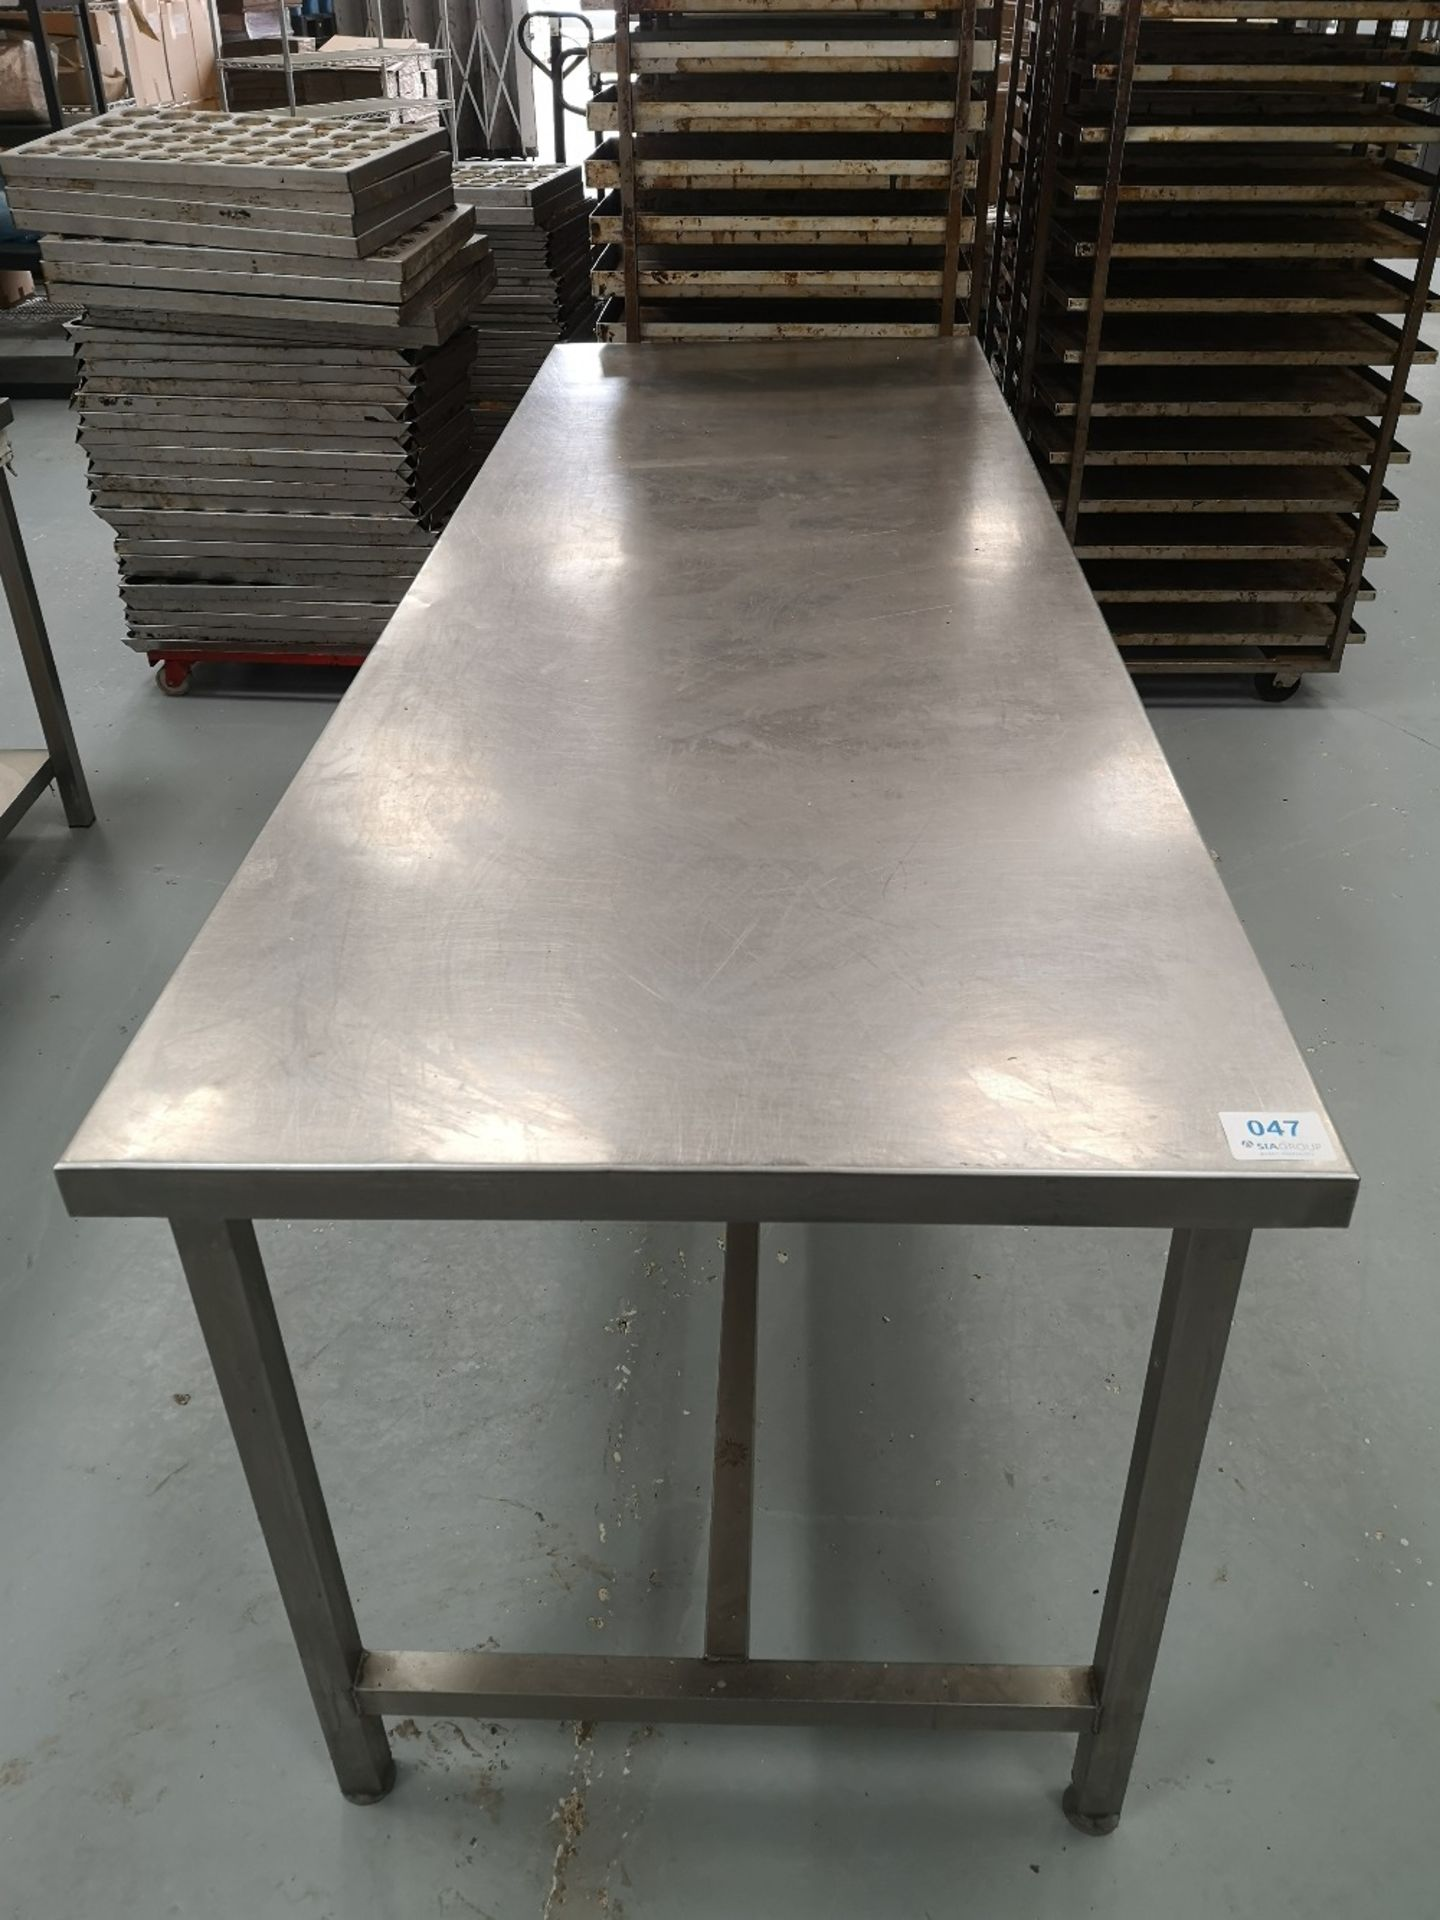 Stainless Steel Preparation Table - Image 3 of 3